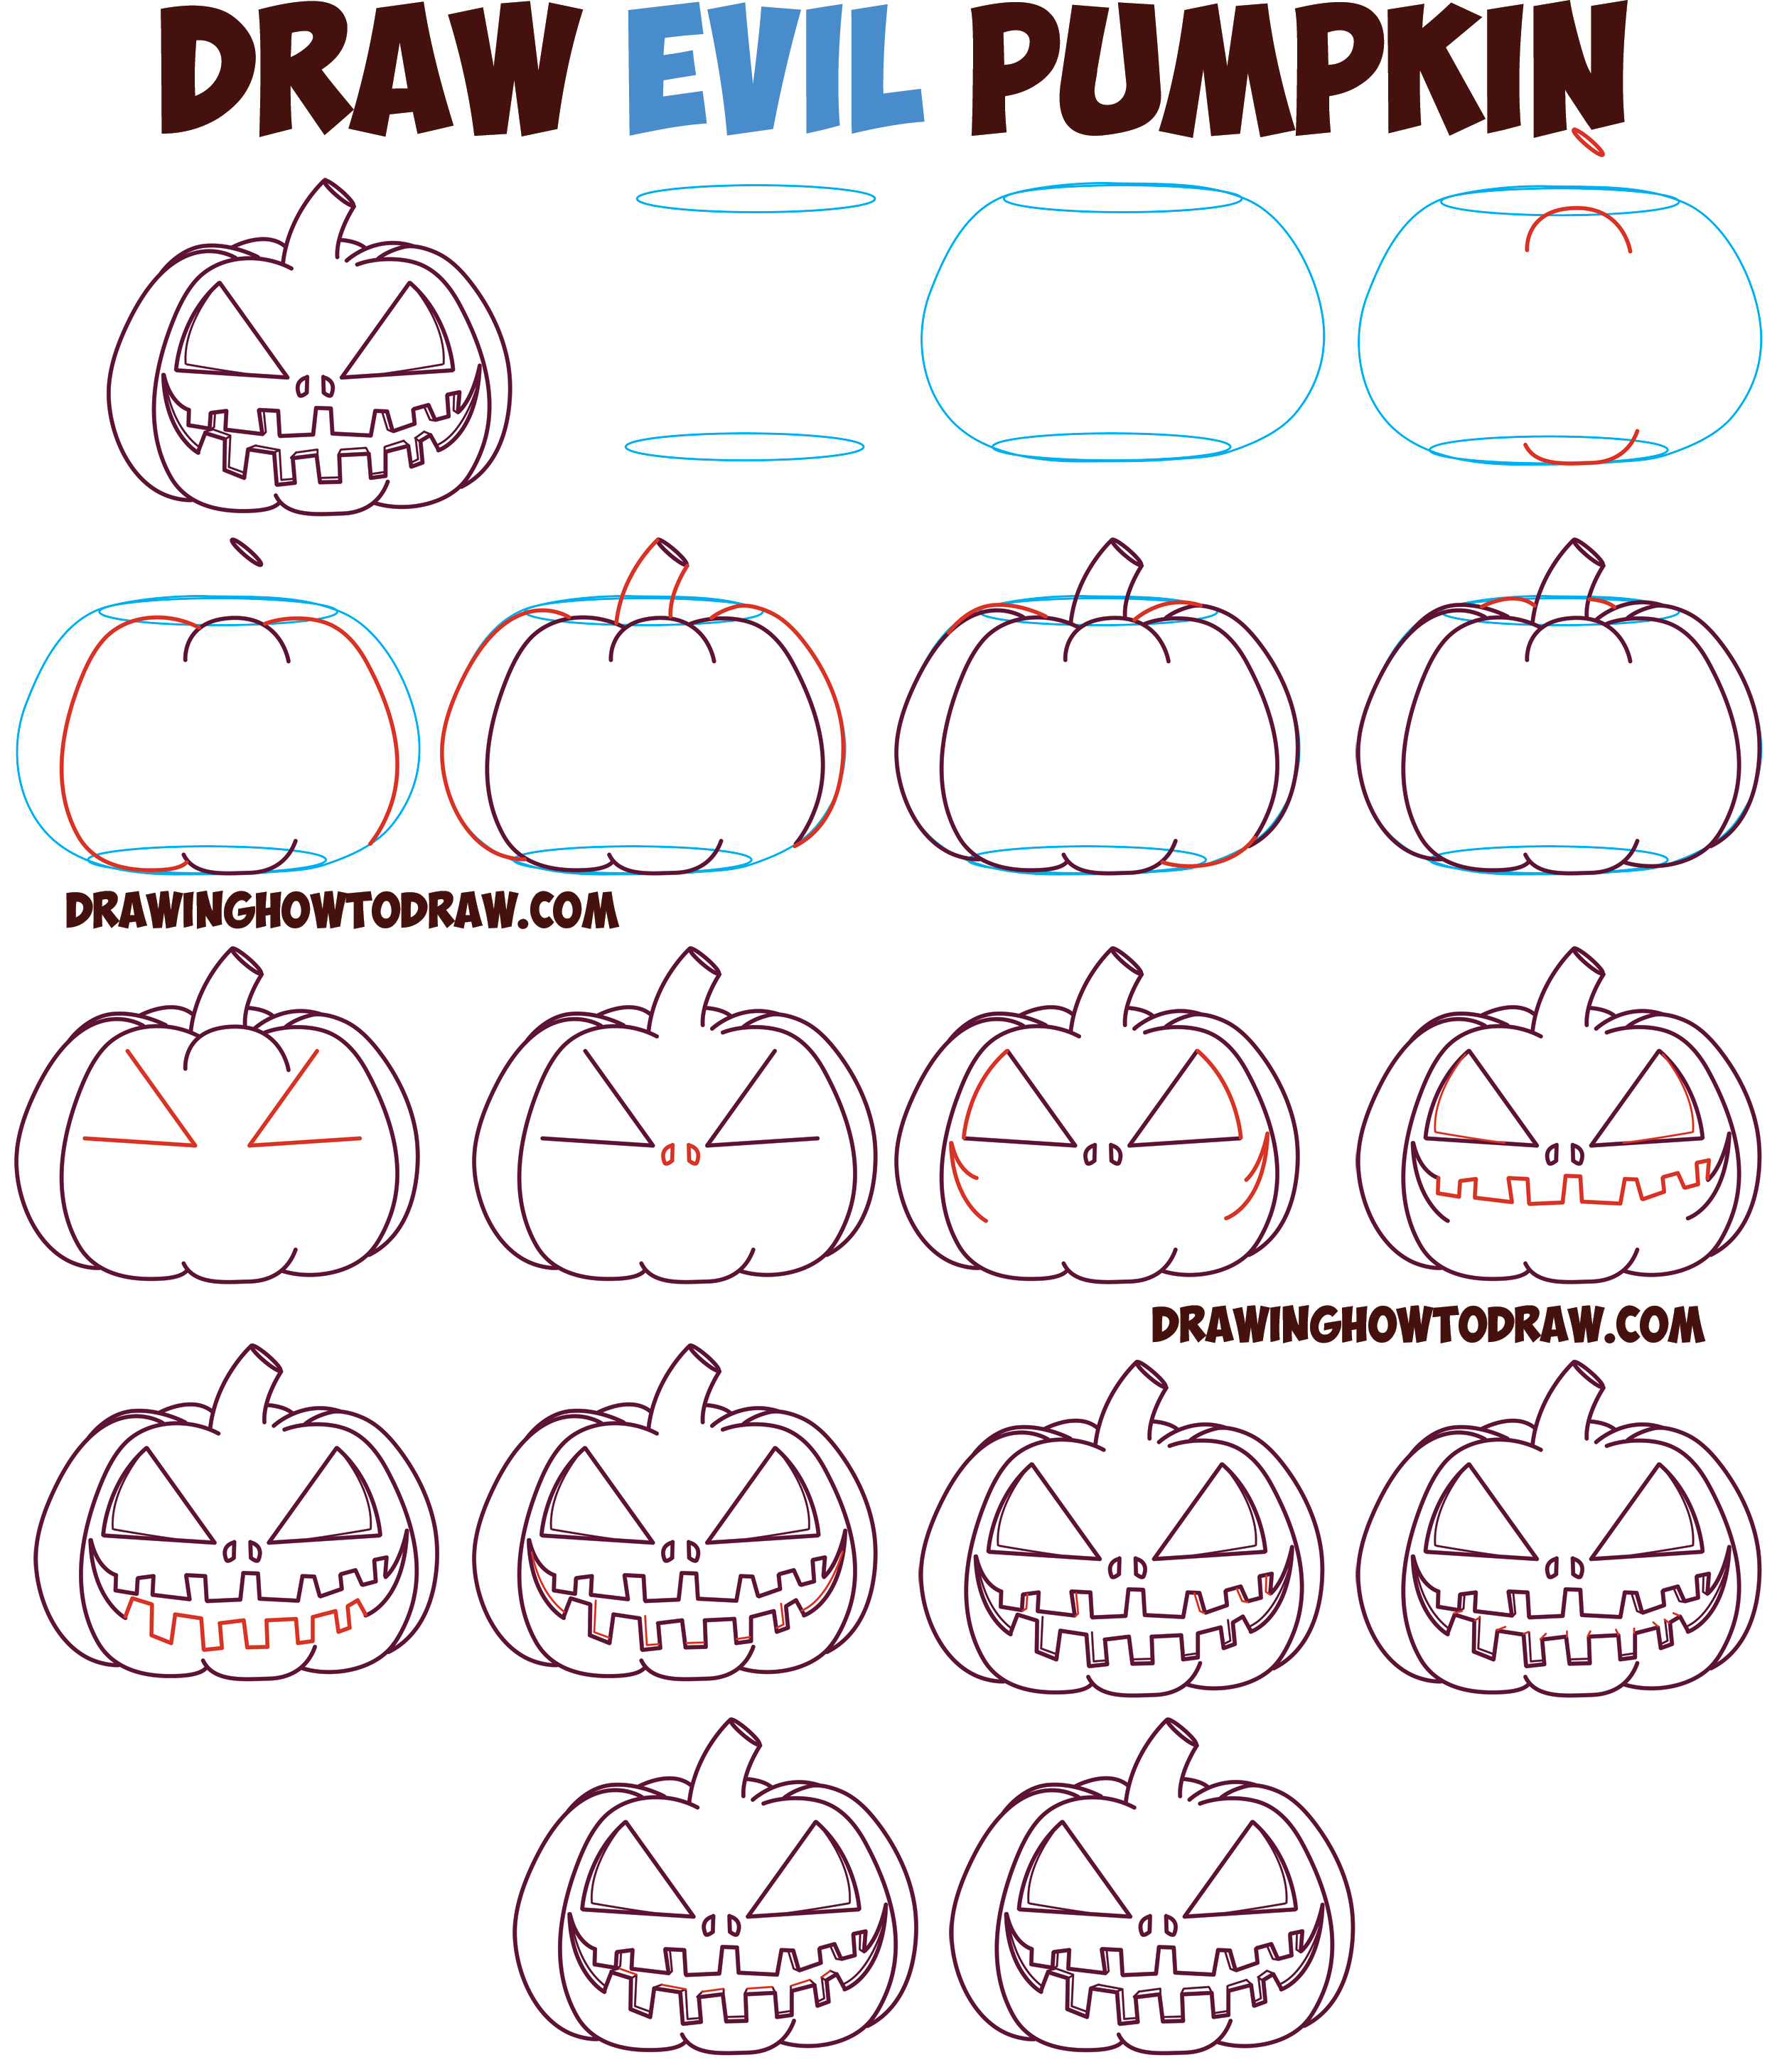 How to Draw Cartoon Pumpkin / Jack O'Lantern : Evil, Angry Zipper Mouth, Cut Mouthed Pumpkin